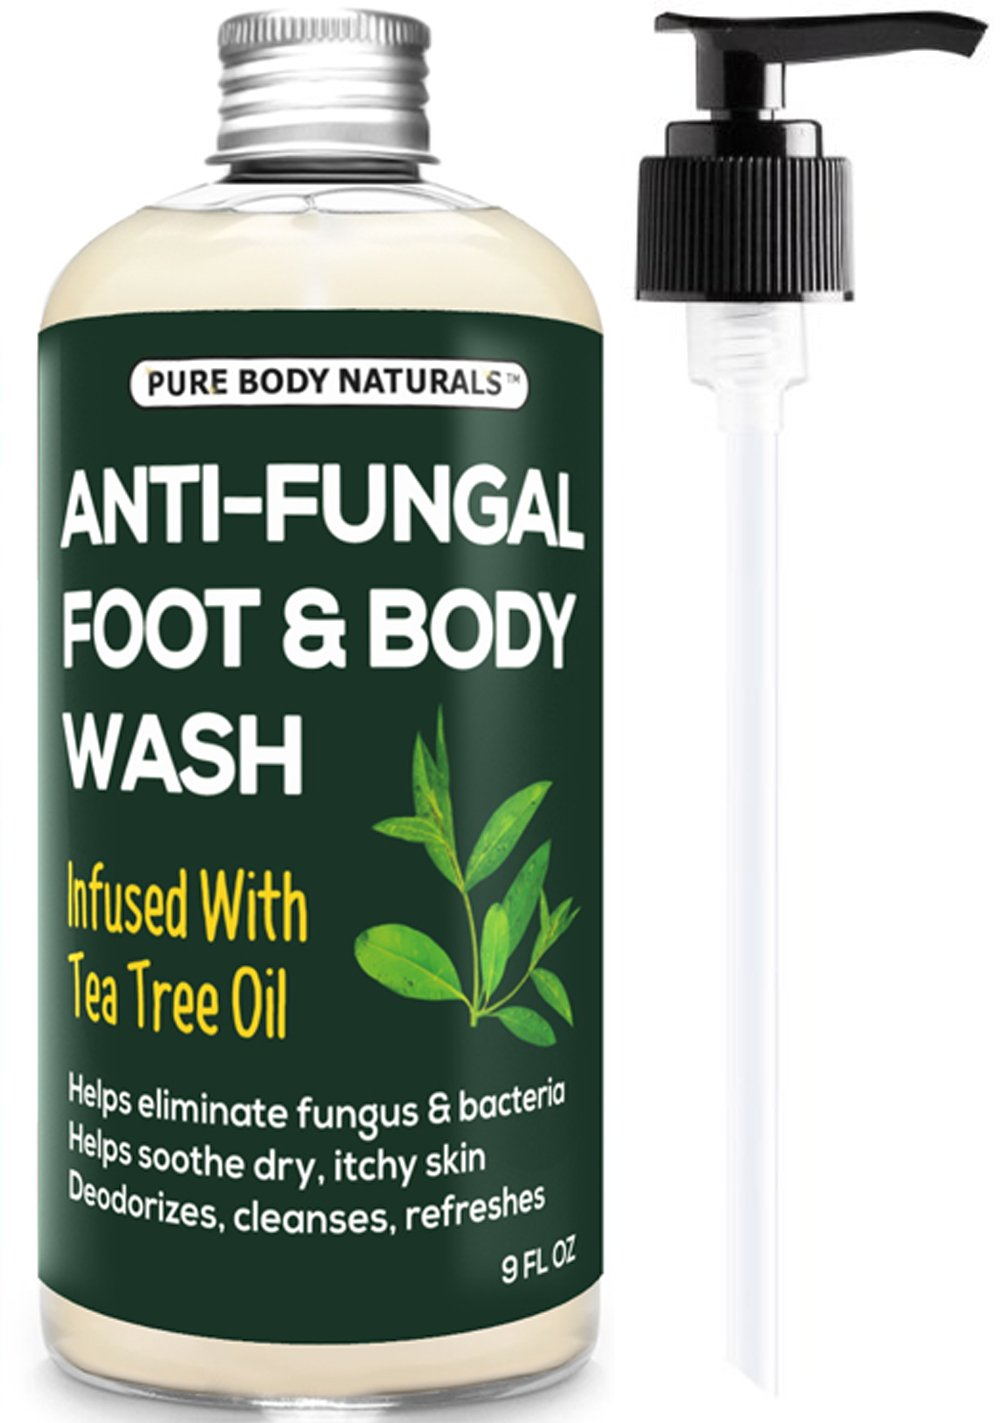 Anti-Fungal Body and Foot Wash with Tea Tree Oil for Athletes Foot and Fungus by Pure Body Naturals, 9 Fl. Ounce